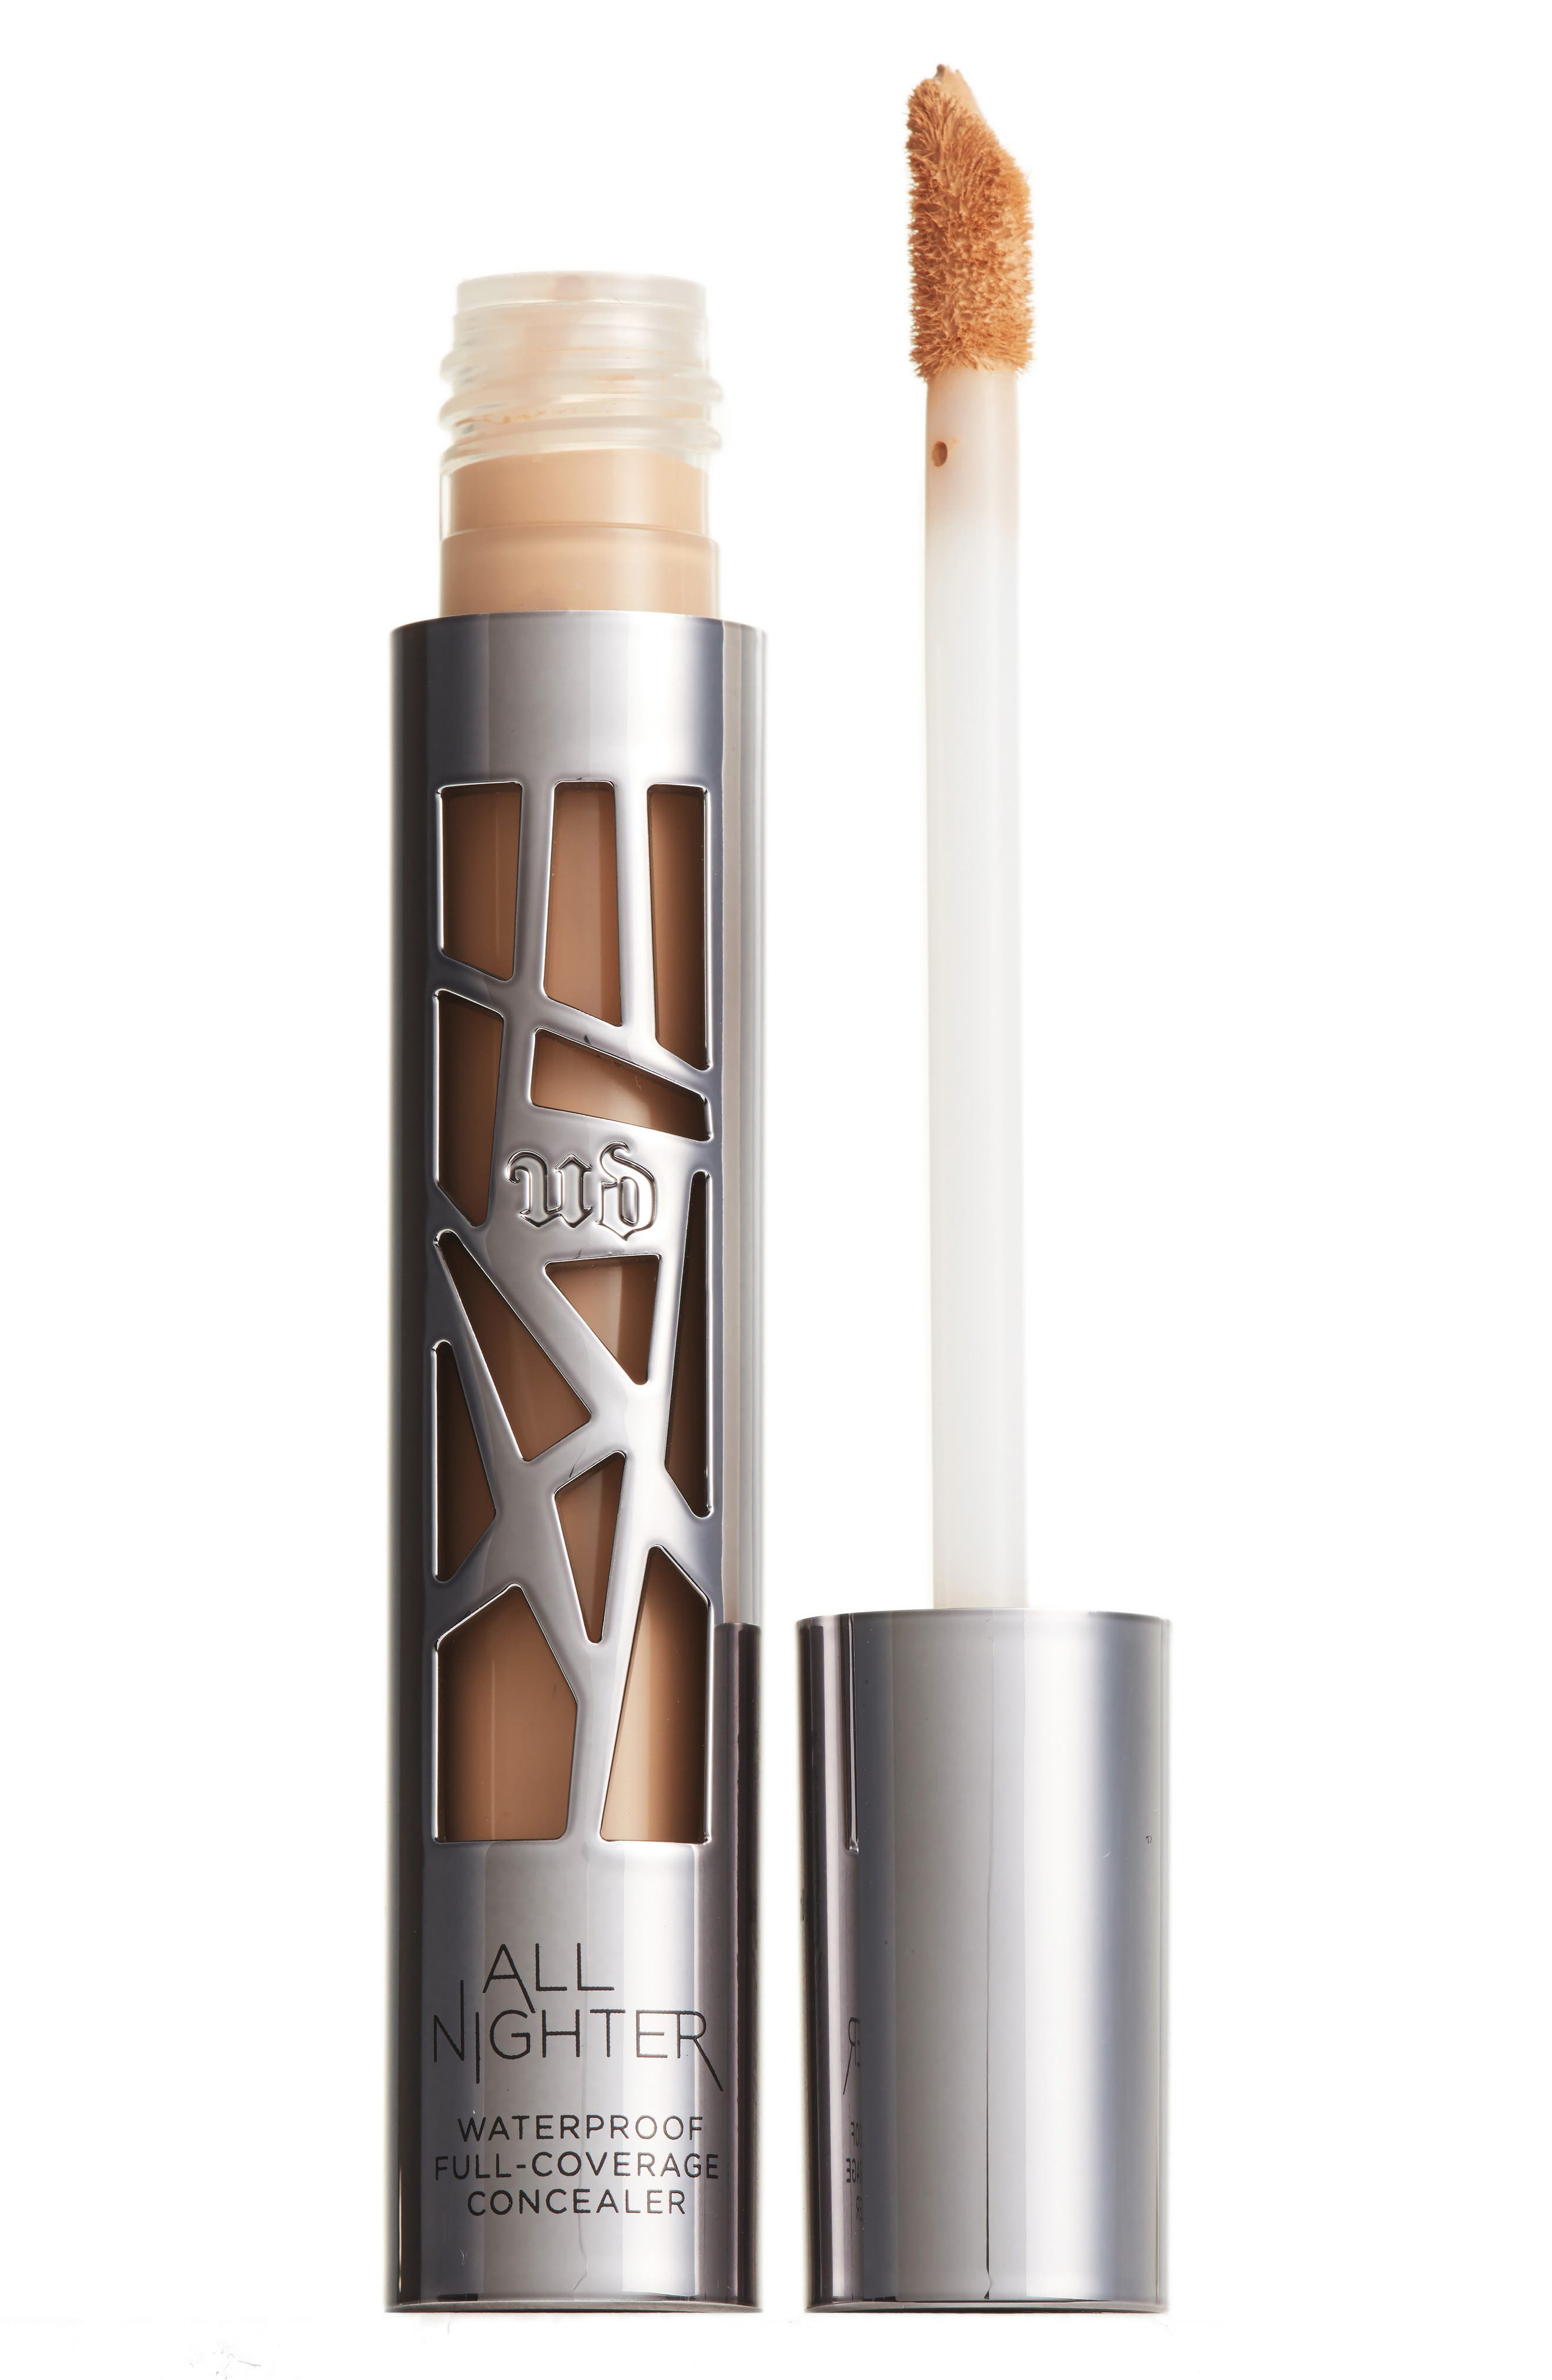 What it is: A full-coverage concealer that provides flawless matte coverage that lasts all day and all night. What it does: UD\\\'s ultra-pigmented, blendable formula controls shine and masks imperfections for 24 hours. And the beautiful, modern-matte finish never looks overdone. UD\\\'s waterproof formula stays put until the morning light. Plus, All Nighter Concealer absorbs oil to keep skin looking beautifully matte. A major problem solver, All